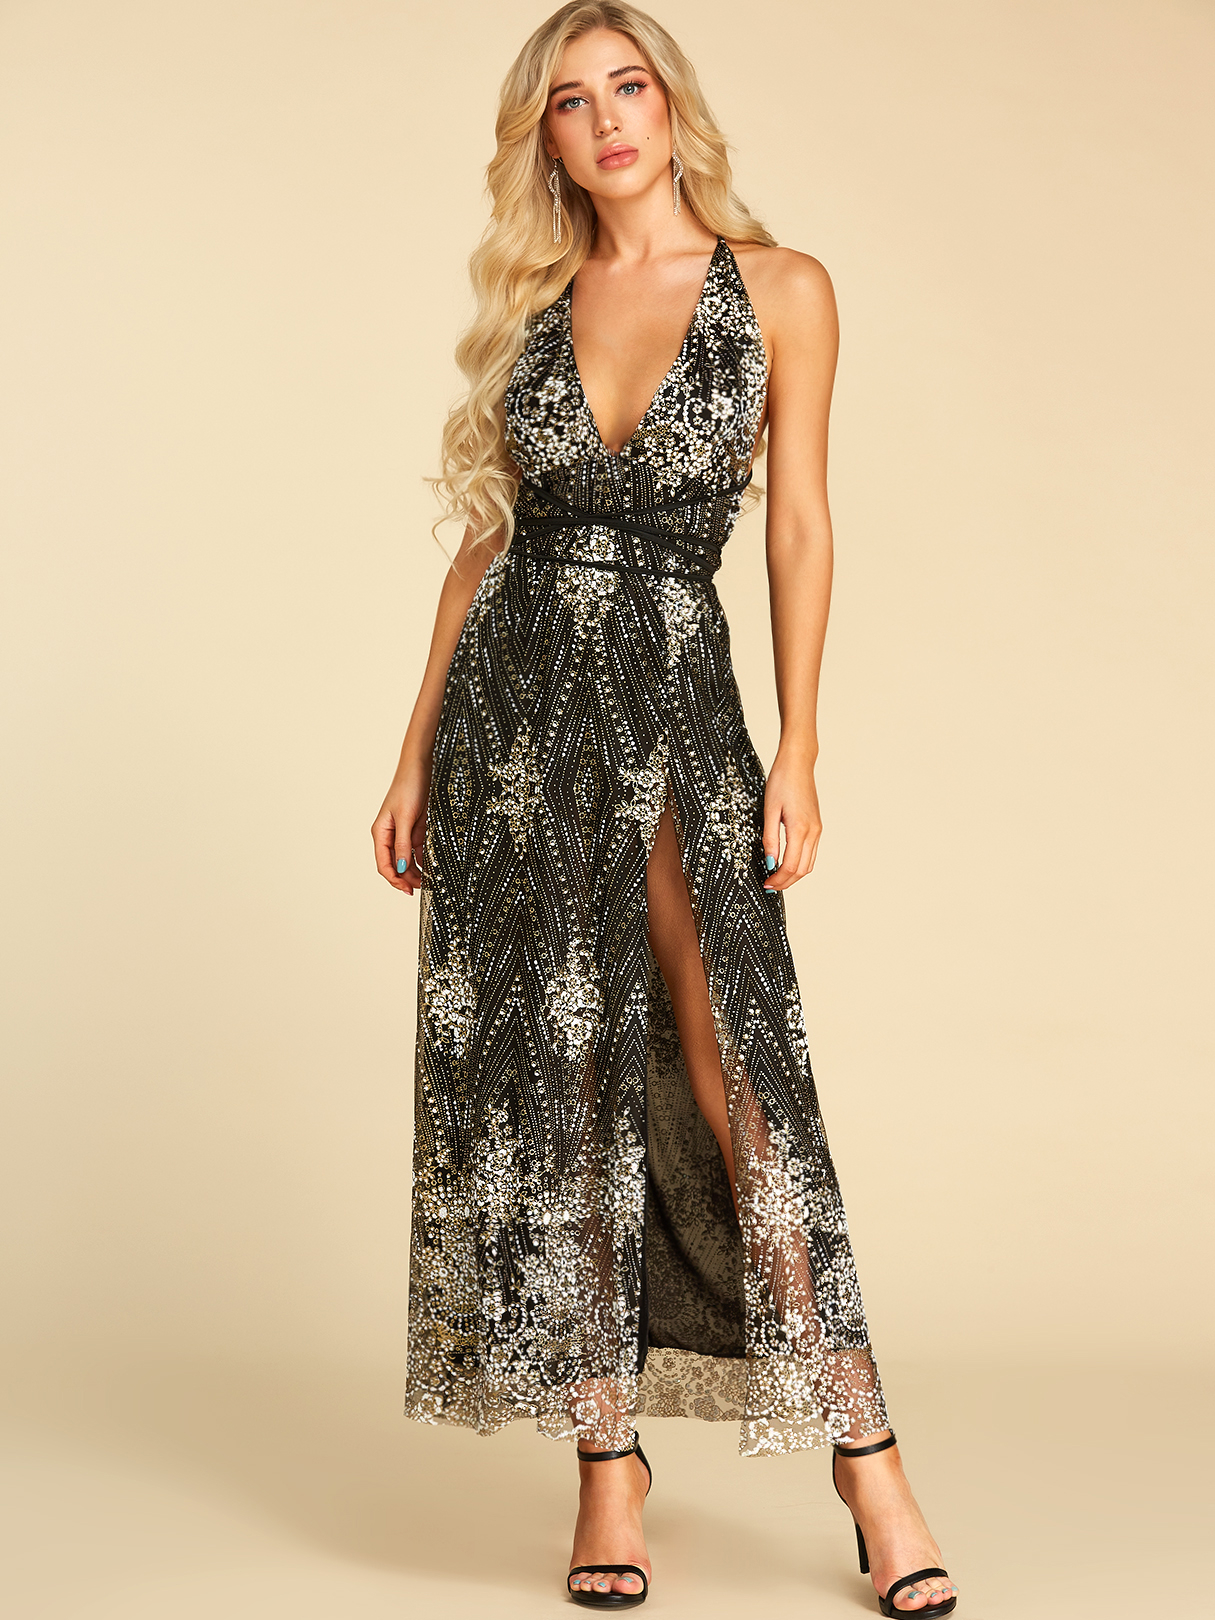 Black Sequins Backless Design Deep V Neck Sleeveless Dress